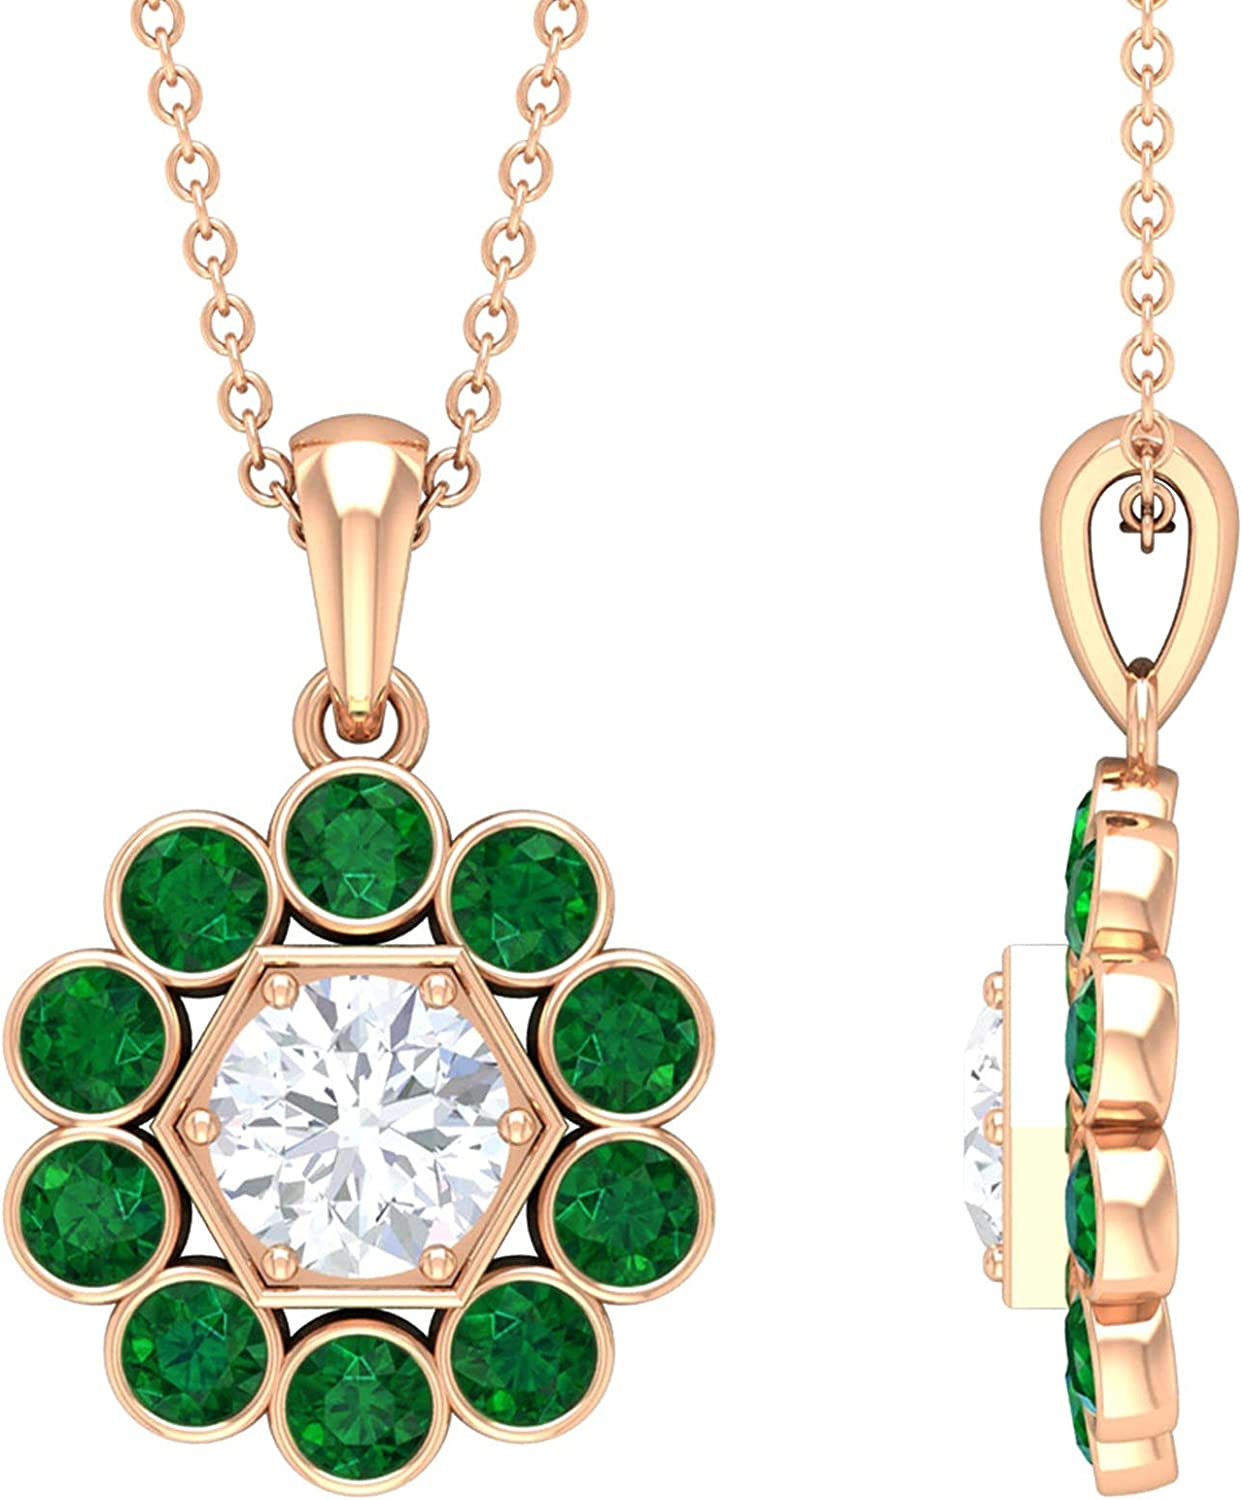 1.75 CT Bezel Set Moissanite Pendant Necklace with Created Emerald Halo (D-VSSI Quality),14K Rose Gold,Moissanite